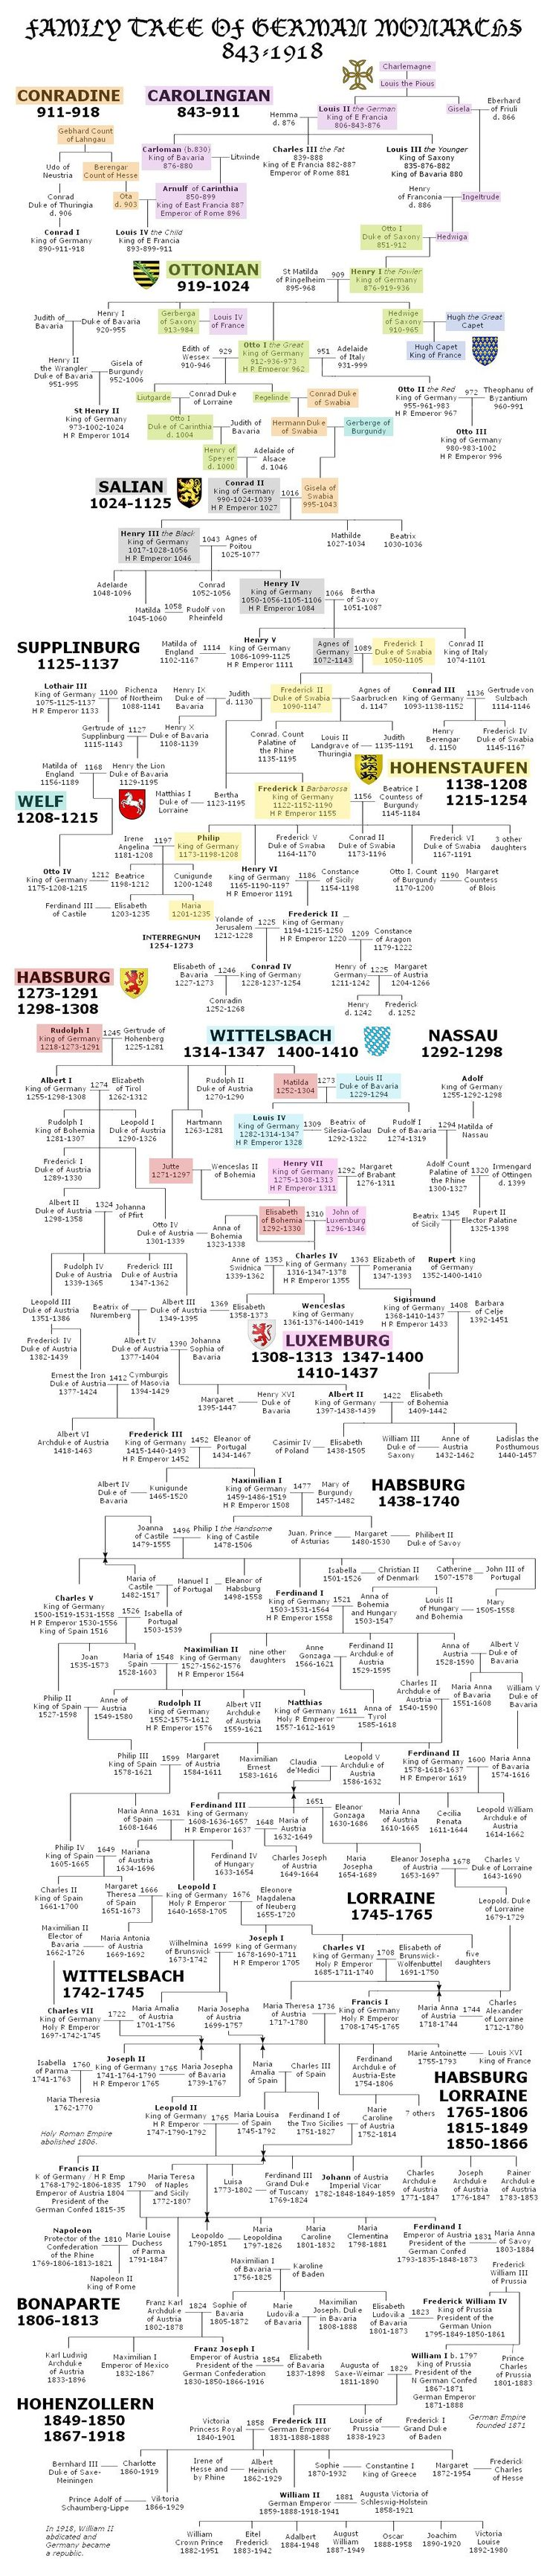 17 best images about aacute rbol familias reales family tree of german monarchs 843 the current queen is also of german descent but her family changed their last to the very english sounding